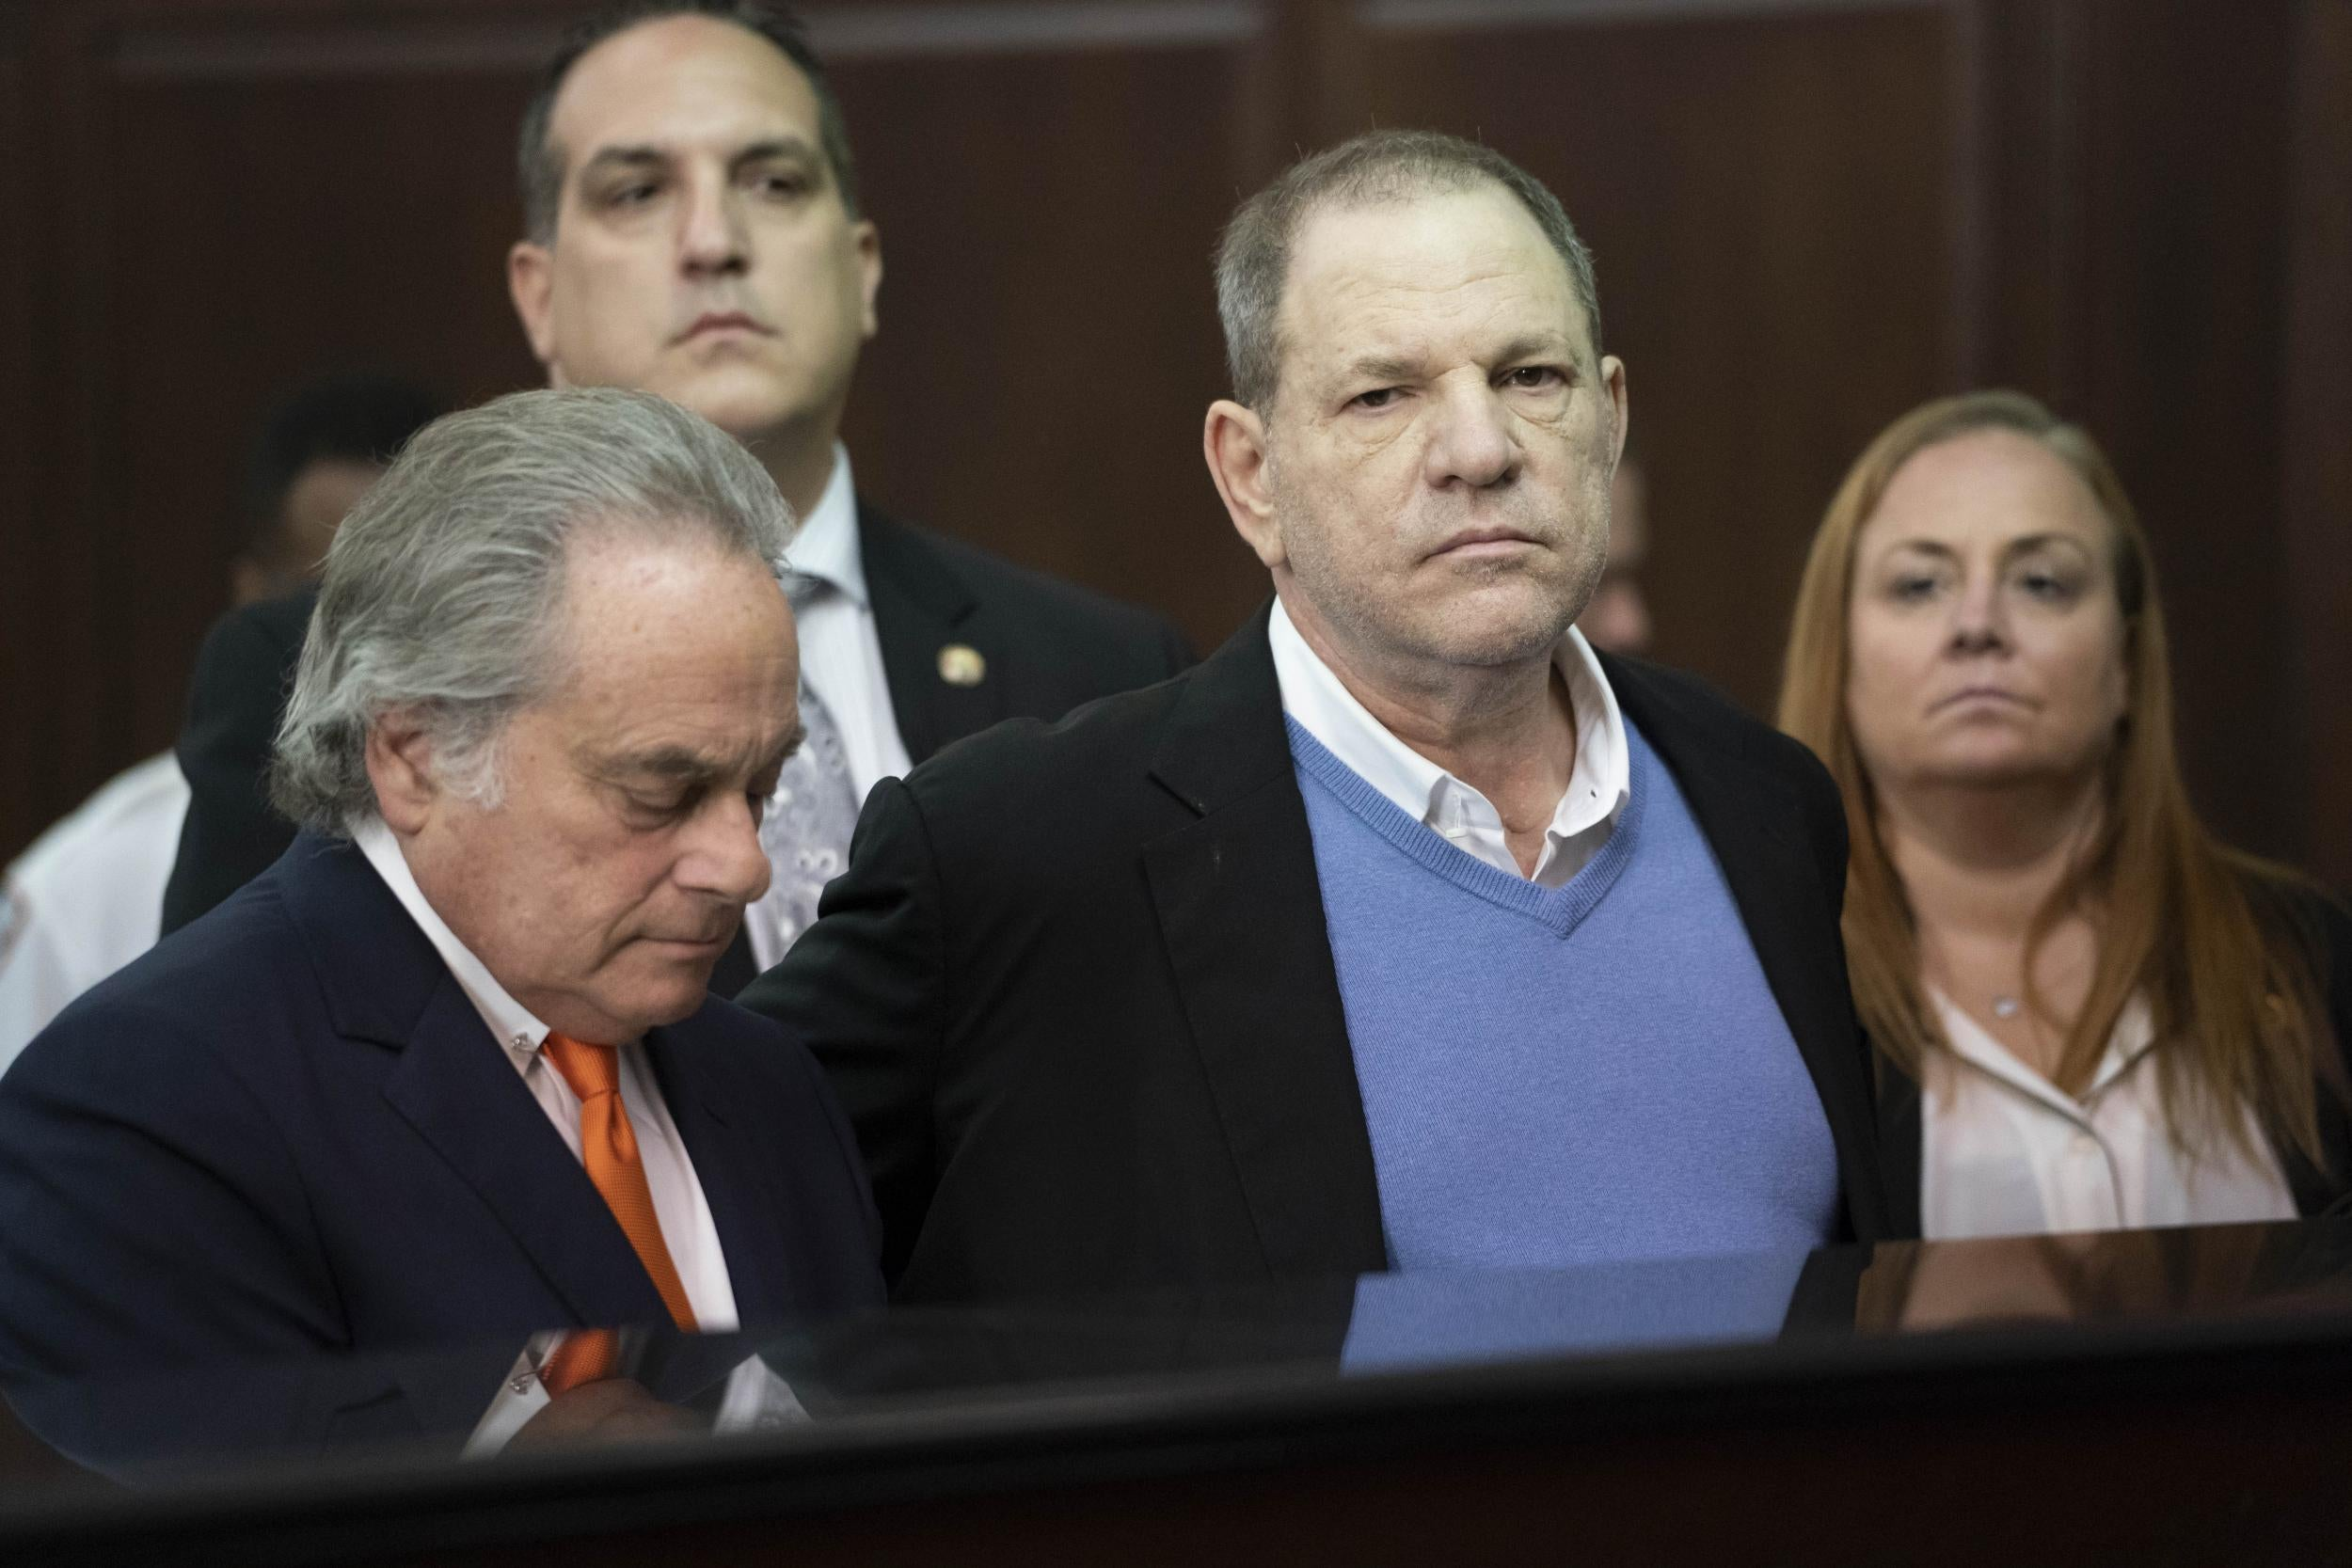 Harvey Weinstein will not testify before grand jury helping decide whether to indict him for rape and other sex charges